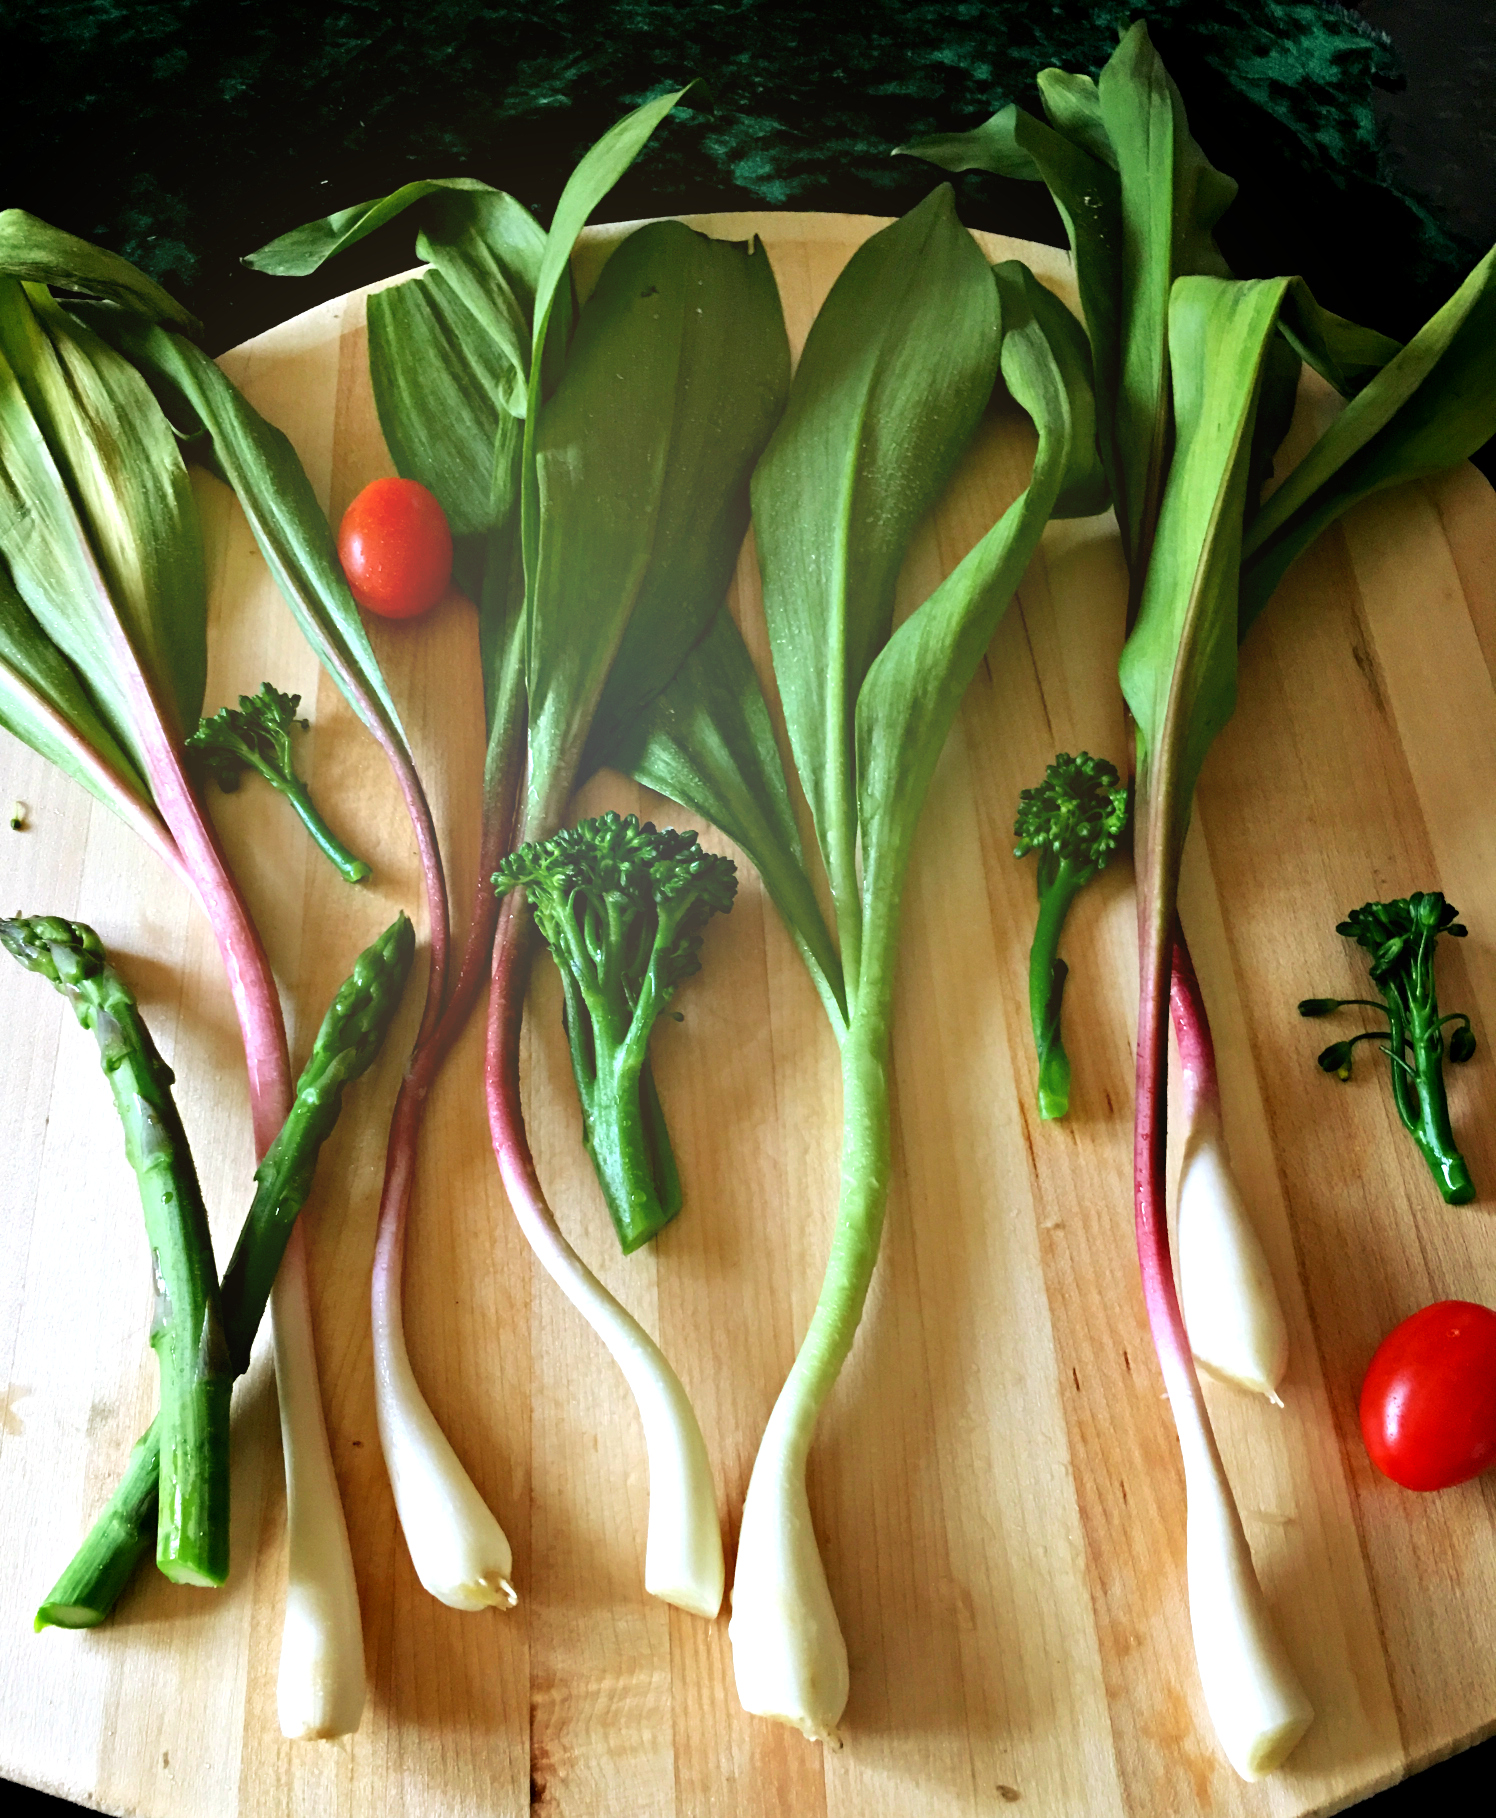 ©Wild Leeks and Vegetables by Dena T Bray